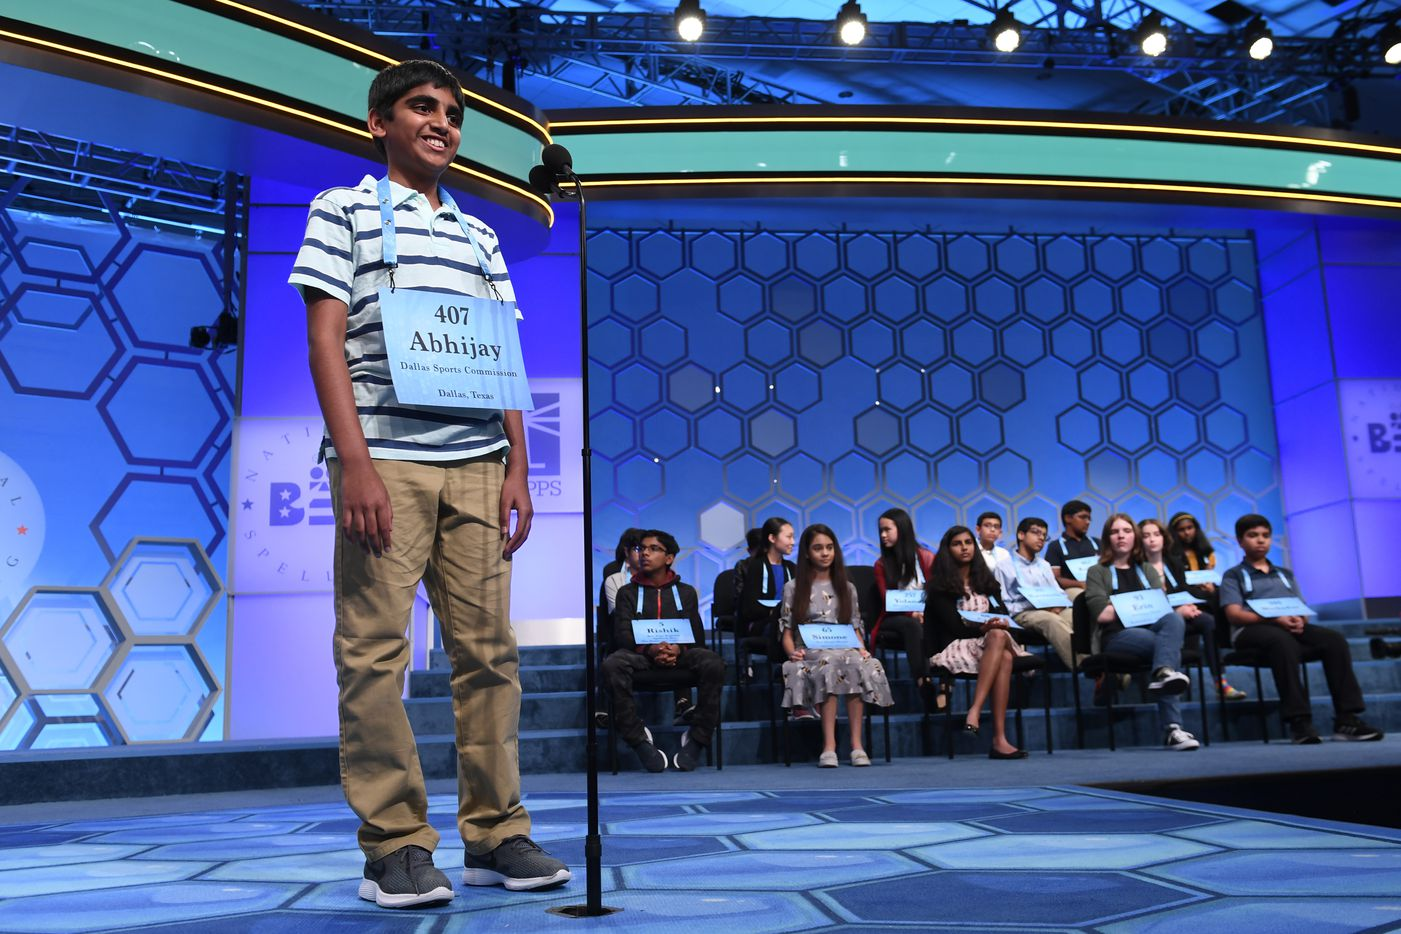 Abhijay Kodali, 12, of Flower Mound, Texas, competes in the finals of the Scripps National Spelling Bee in Oxon Hill, Md., Thursday, May 30, 2019. (AP Photo/Susan Walsh)